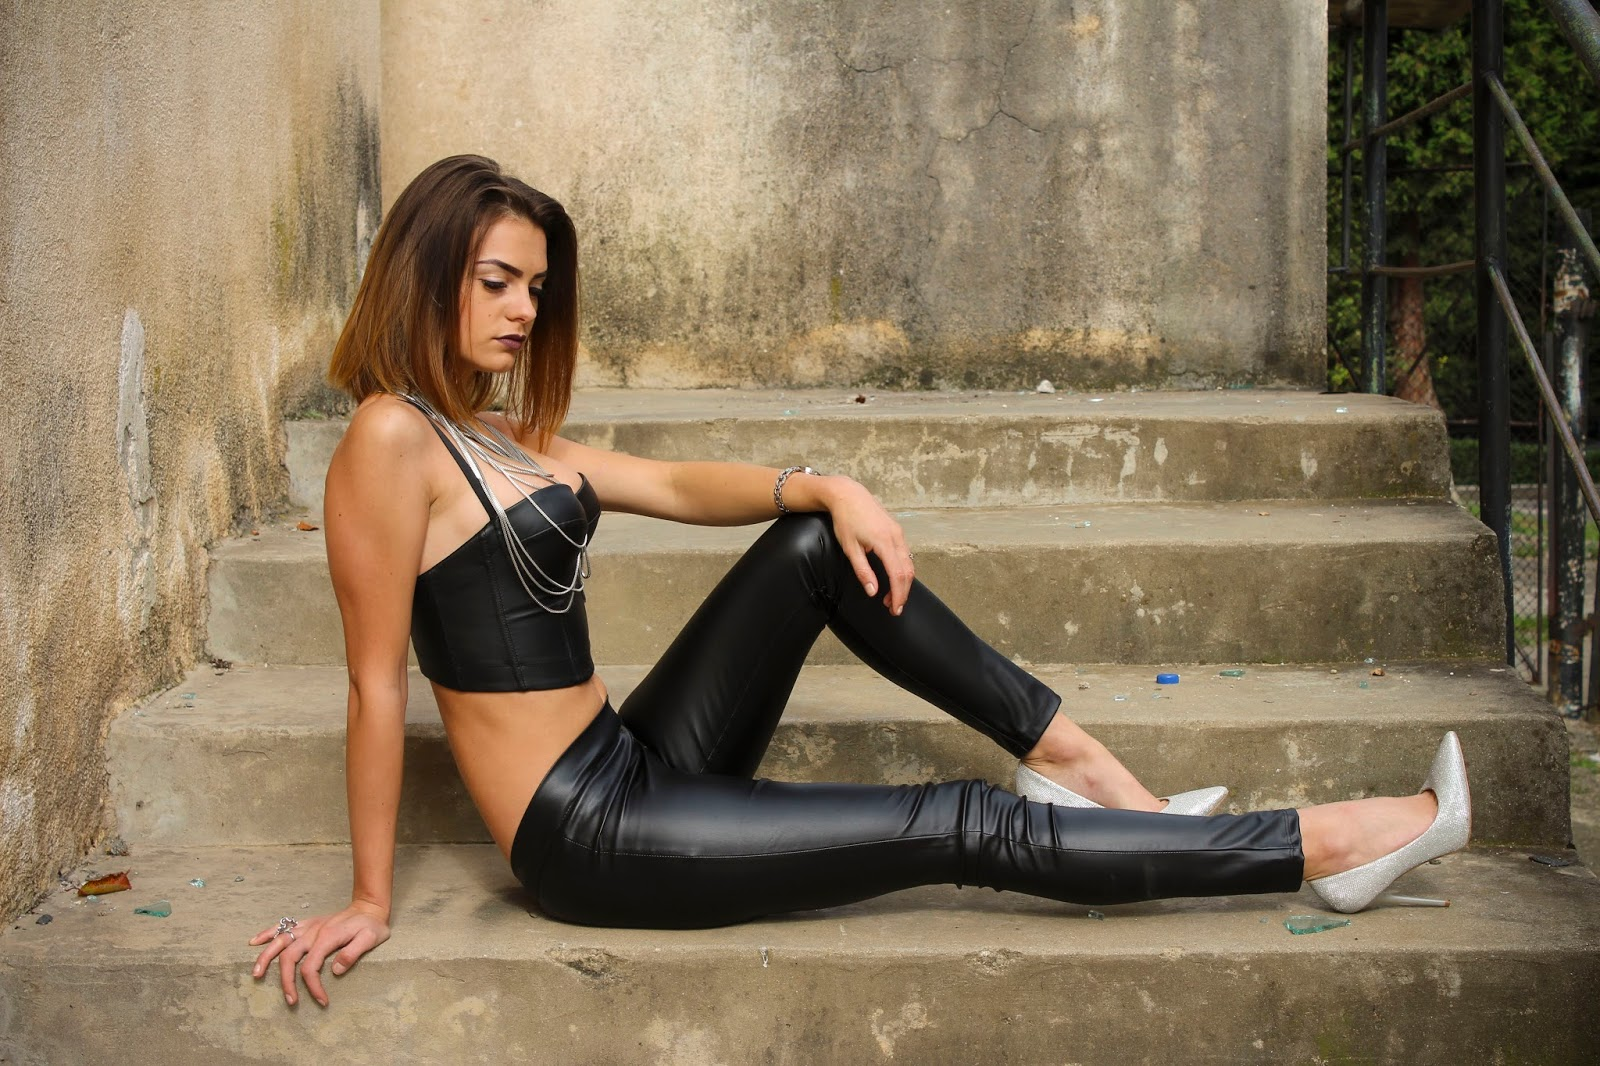 hot-girl-in-leather